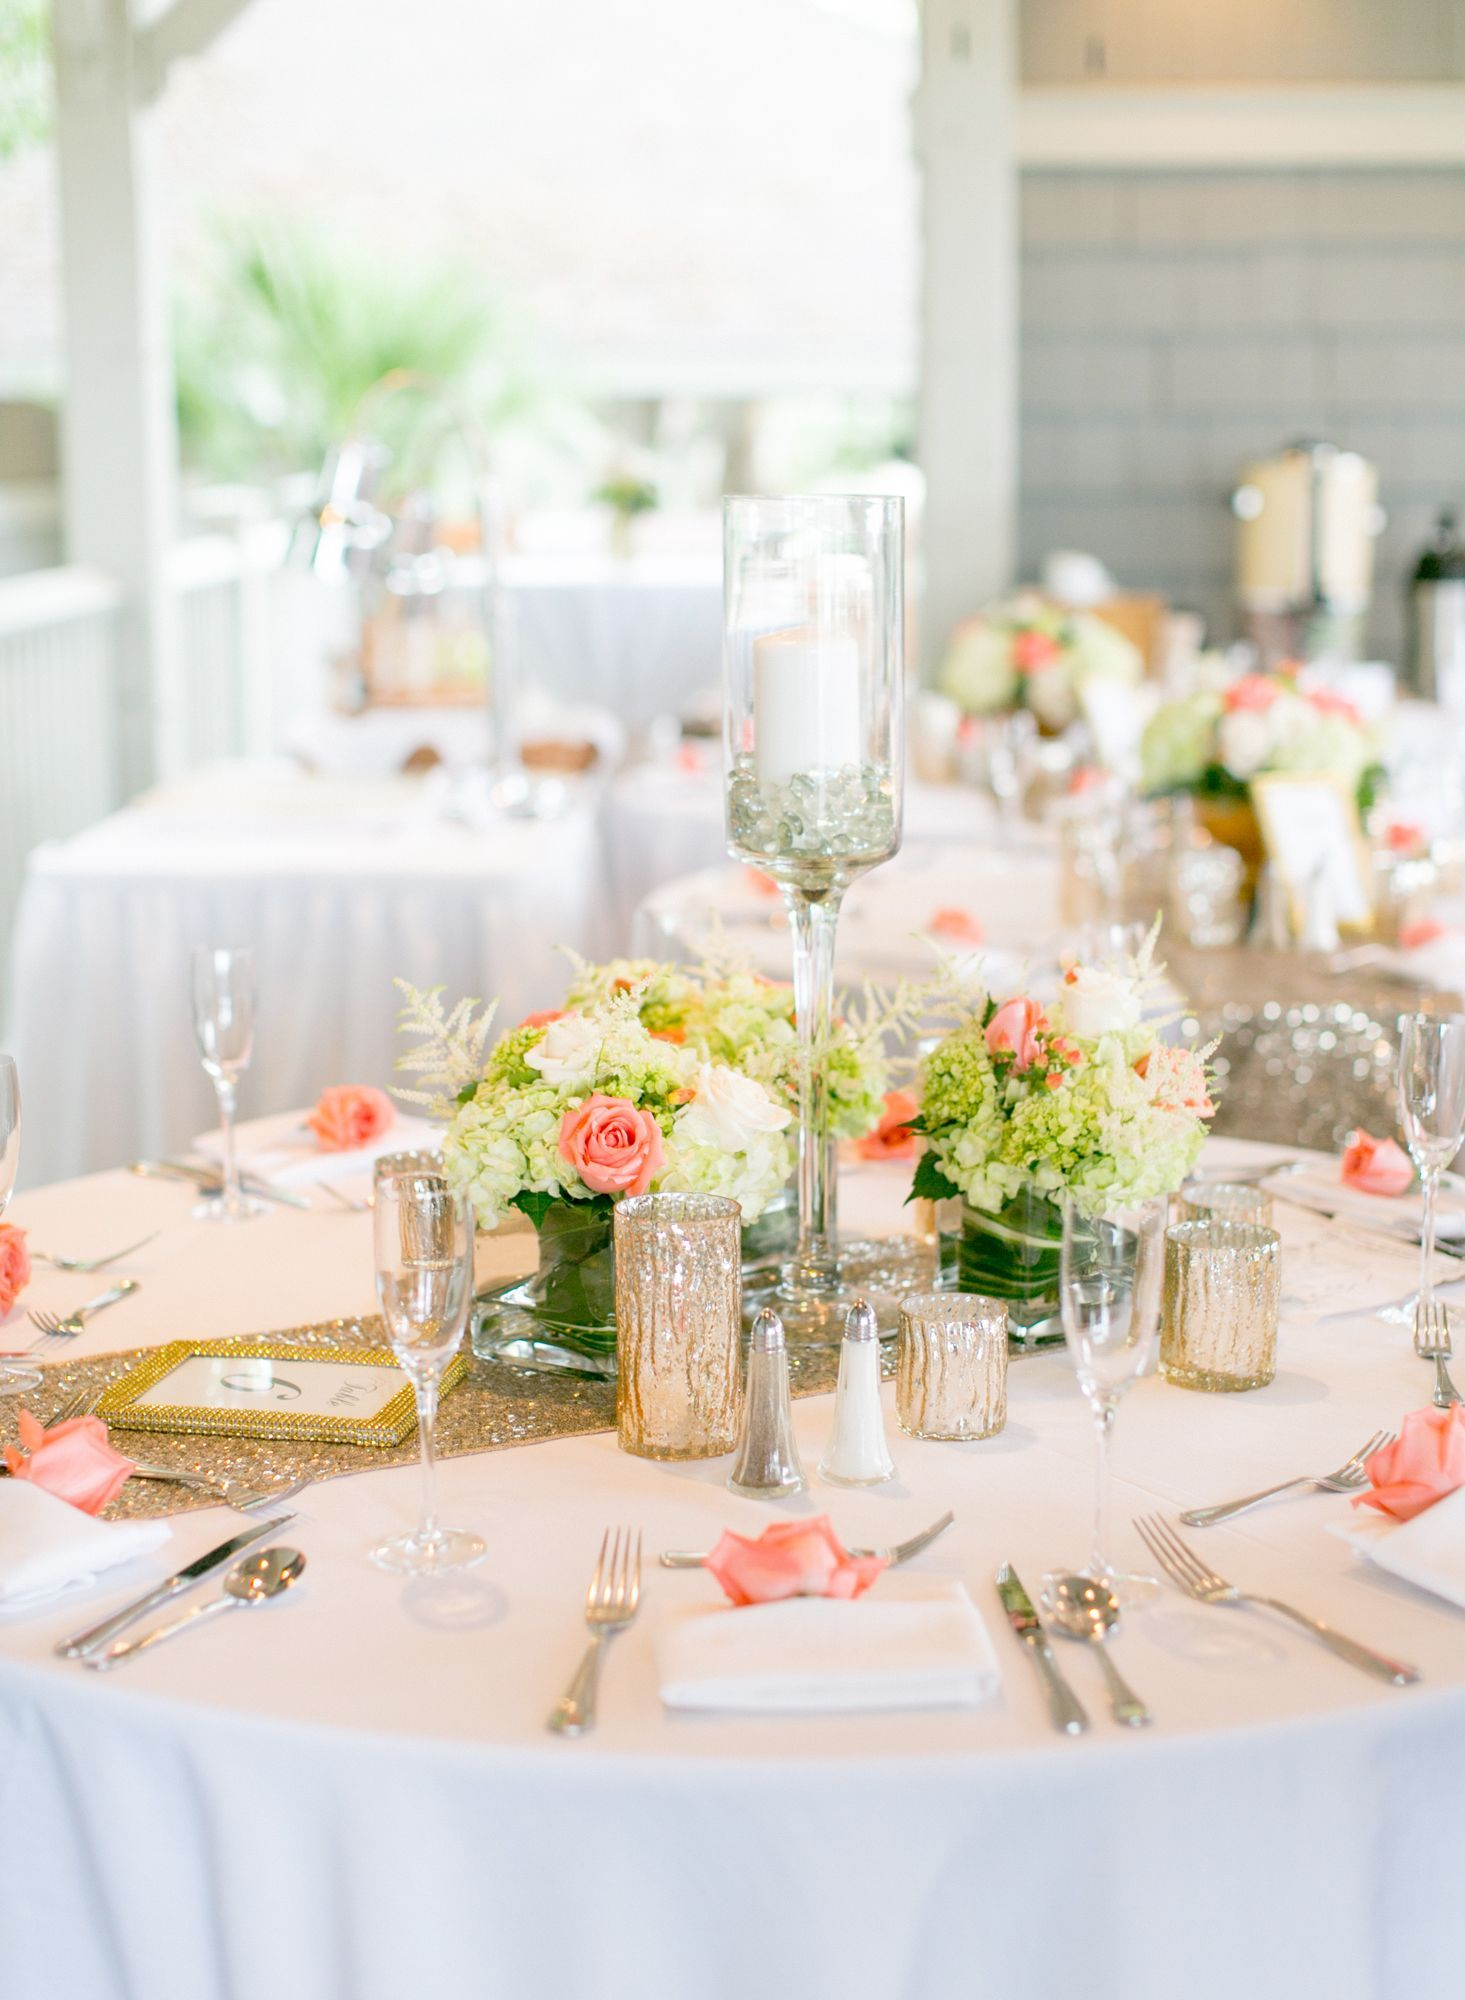 Gold Table Runners And Vibrant Hydrangea Centerpieces Wedding